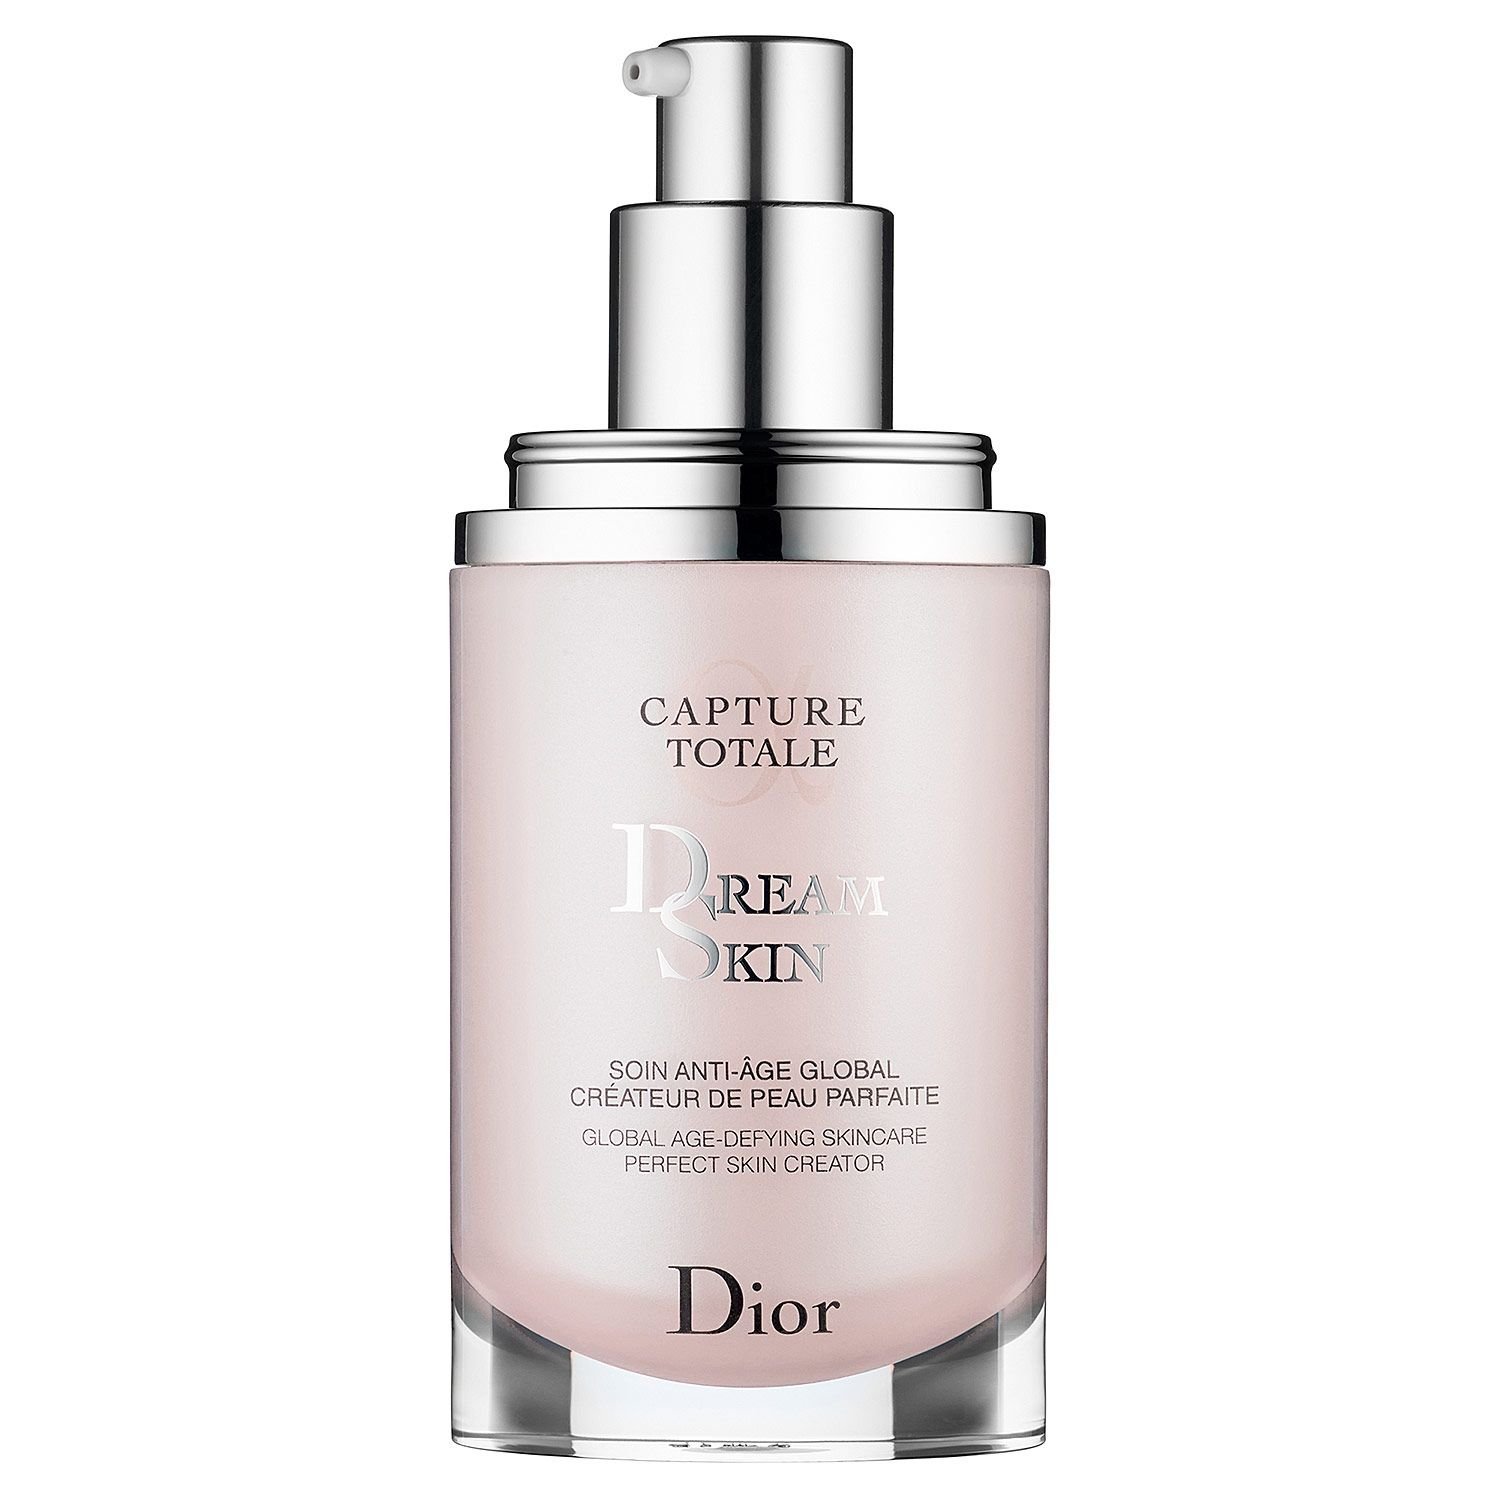 What It Is An Age Defying Perfect Skin Creator That Refines Skin Texture Evens Skintone Diminishes Th Beauty Products Drugstore Sephora Skin Care Moisturizer